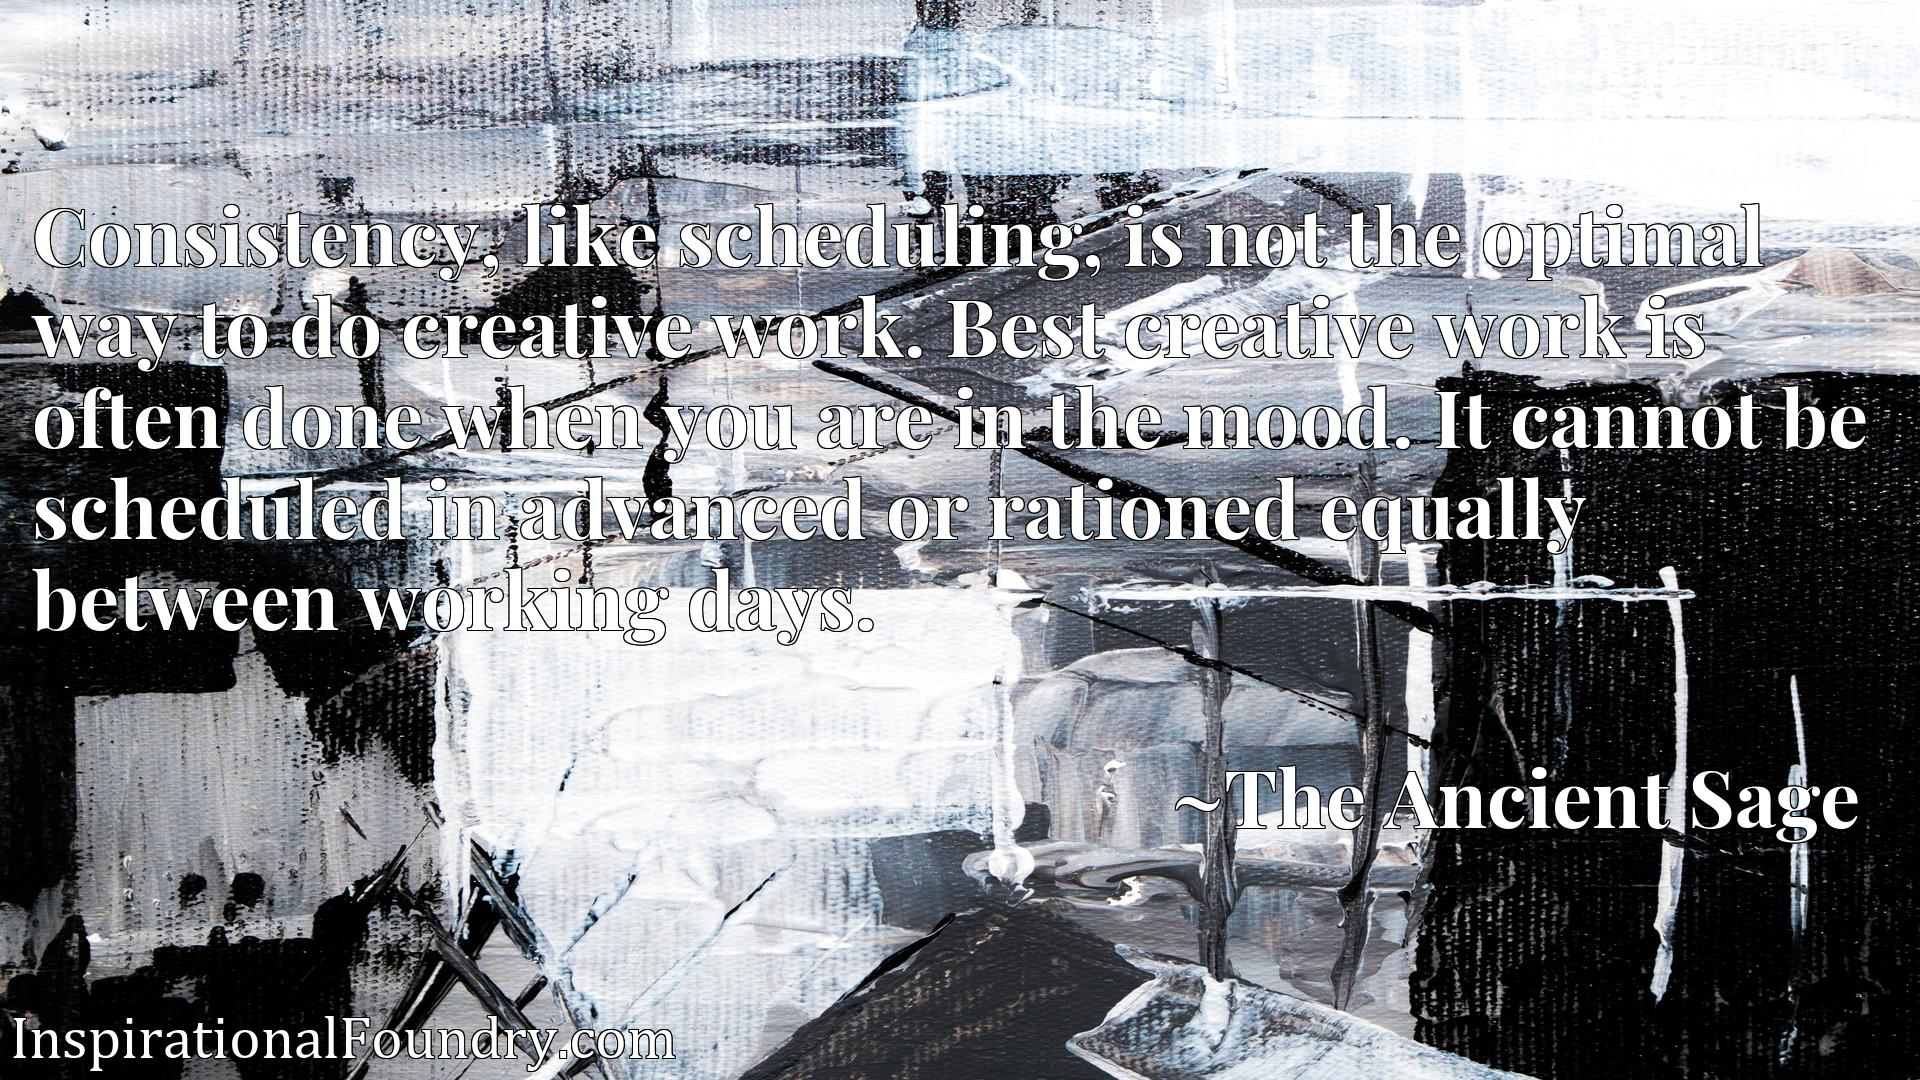 Consistency, like scheduling, is not the optimal way to do creative work. Best creative work is often done when you are in the mood. It cannot be scheduled in advanced or rationed equally between working days.